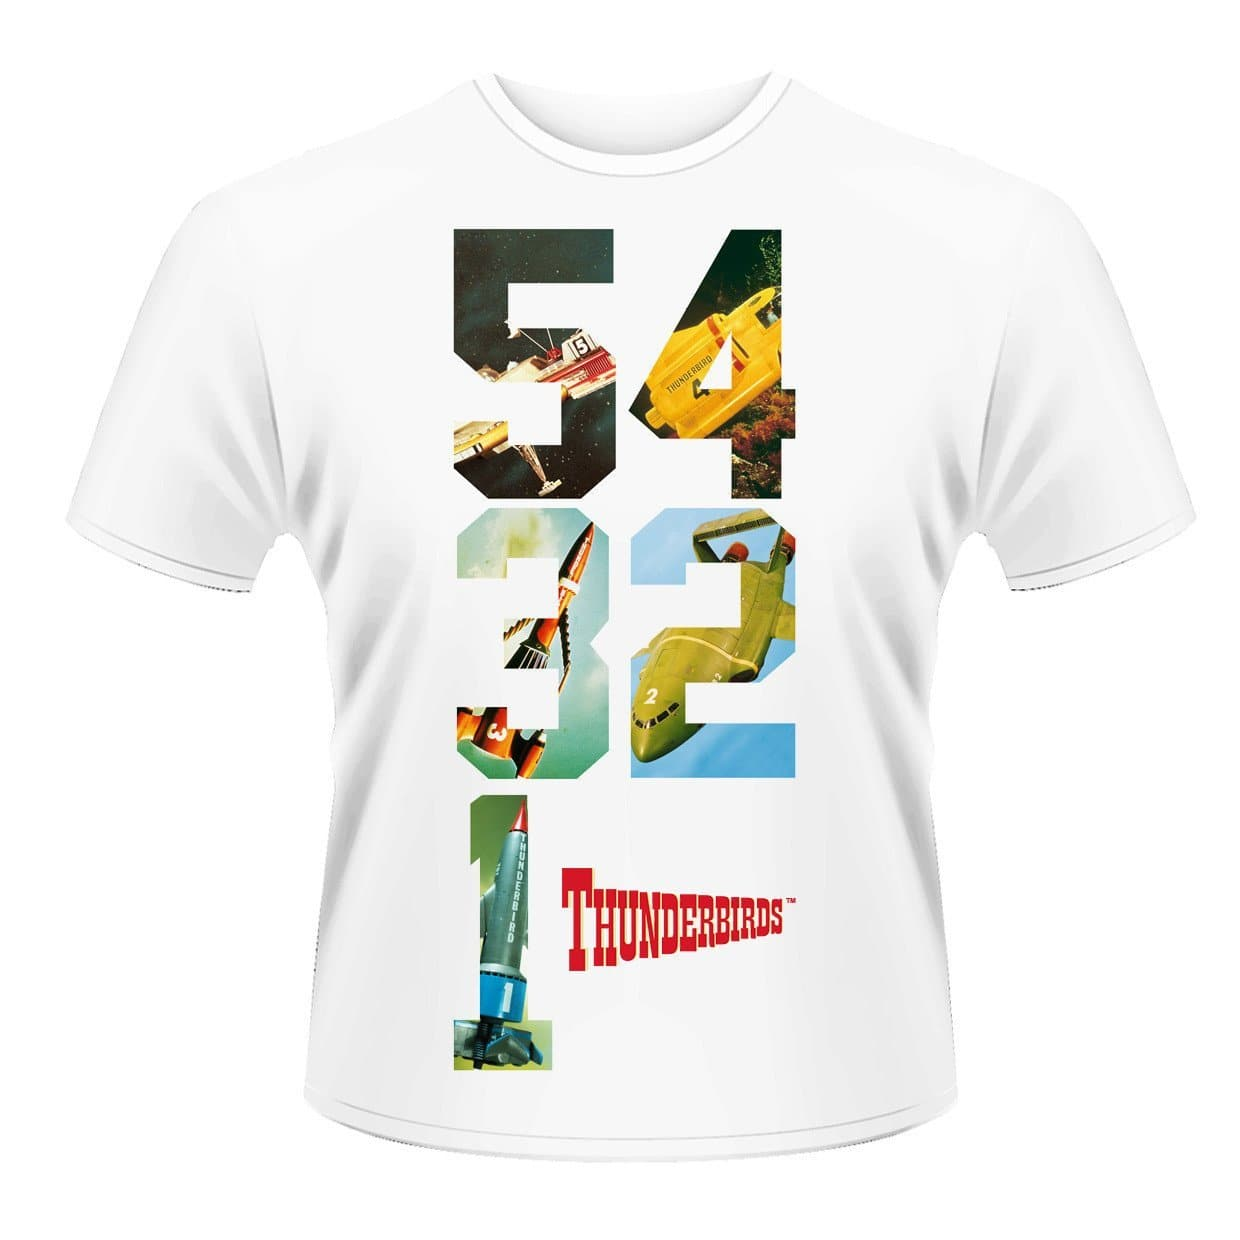 5 4 3 2 1 - Thunderbirds T-shirt - Gerry Anderson Official - 1